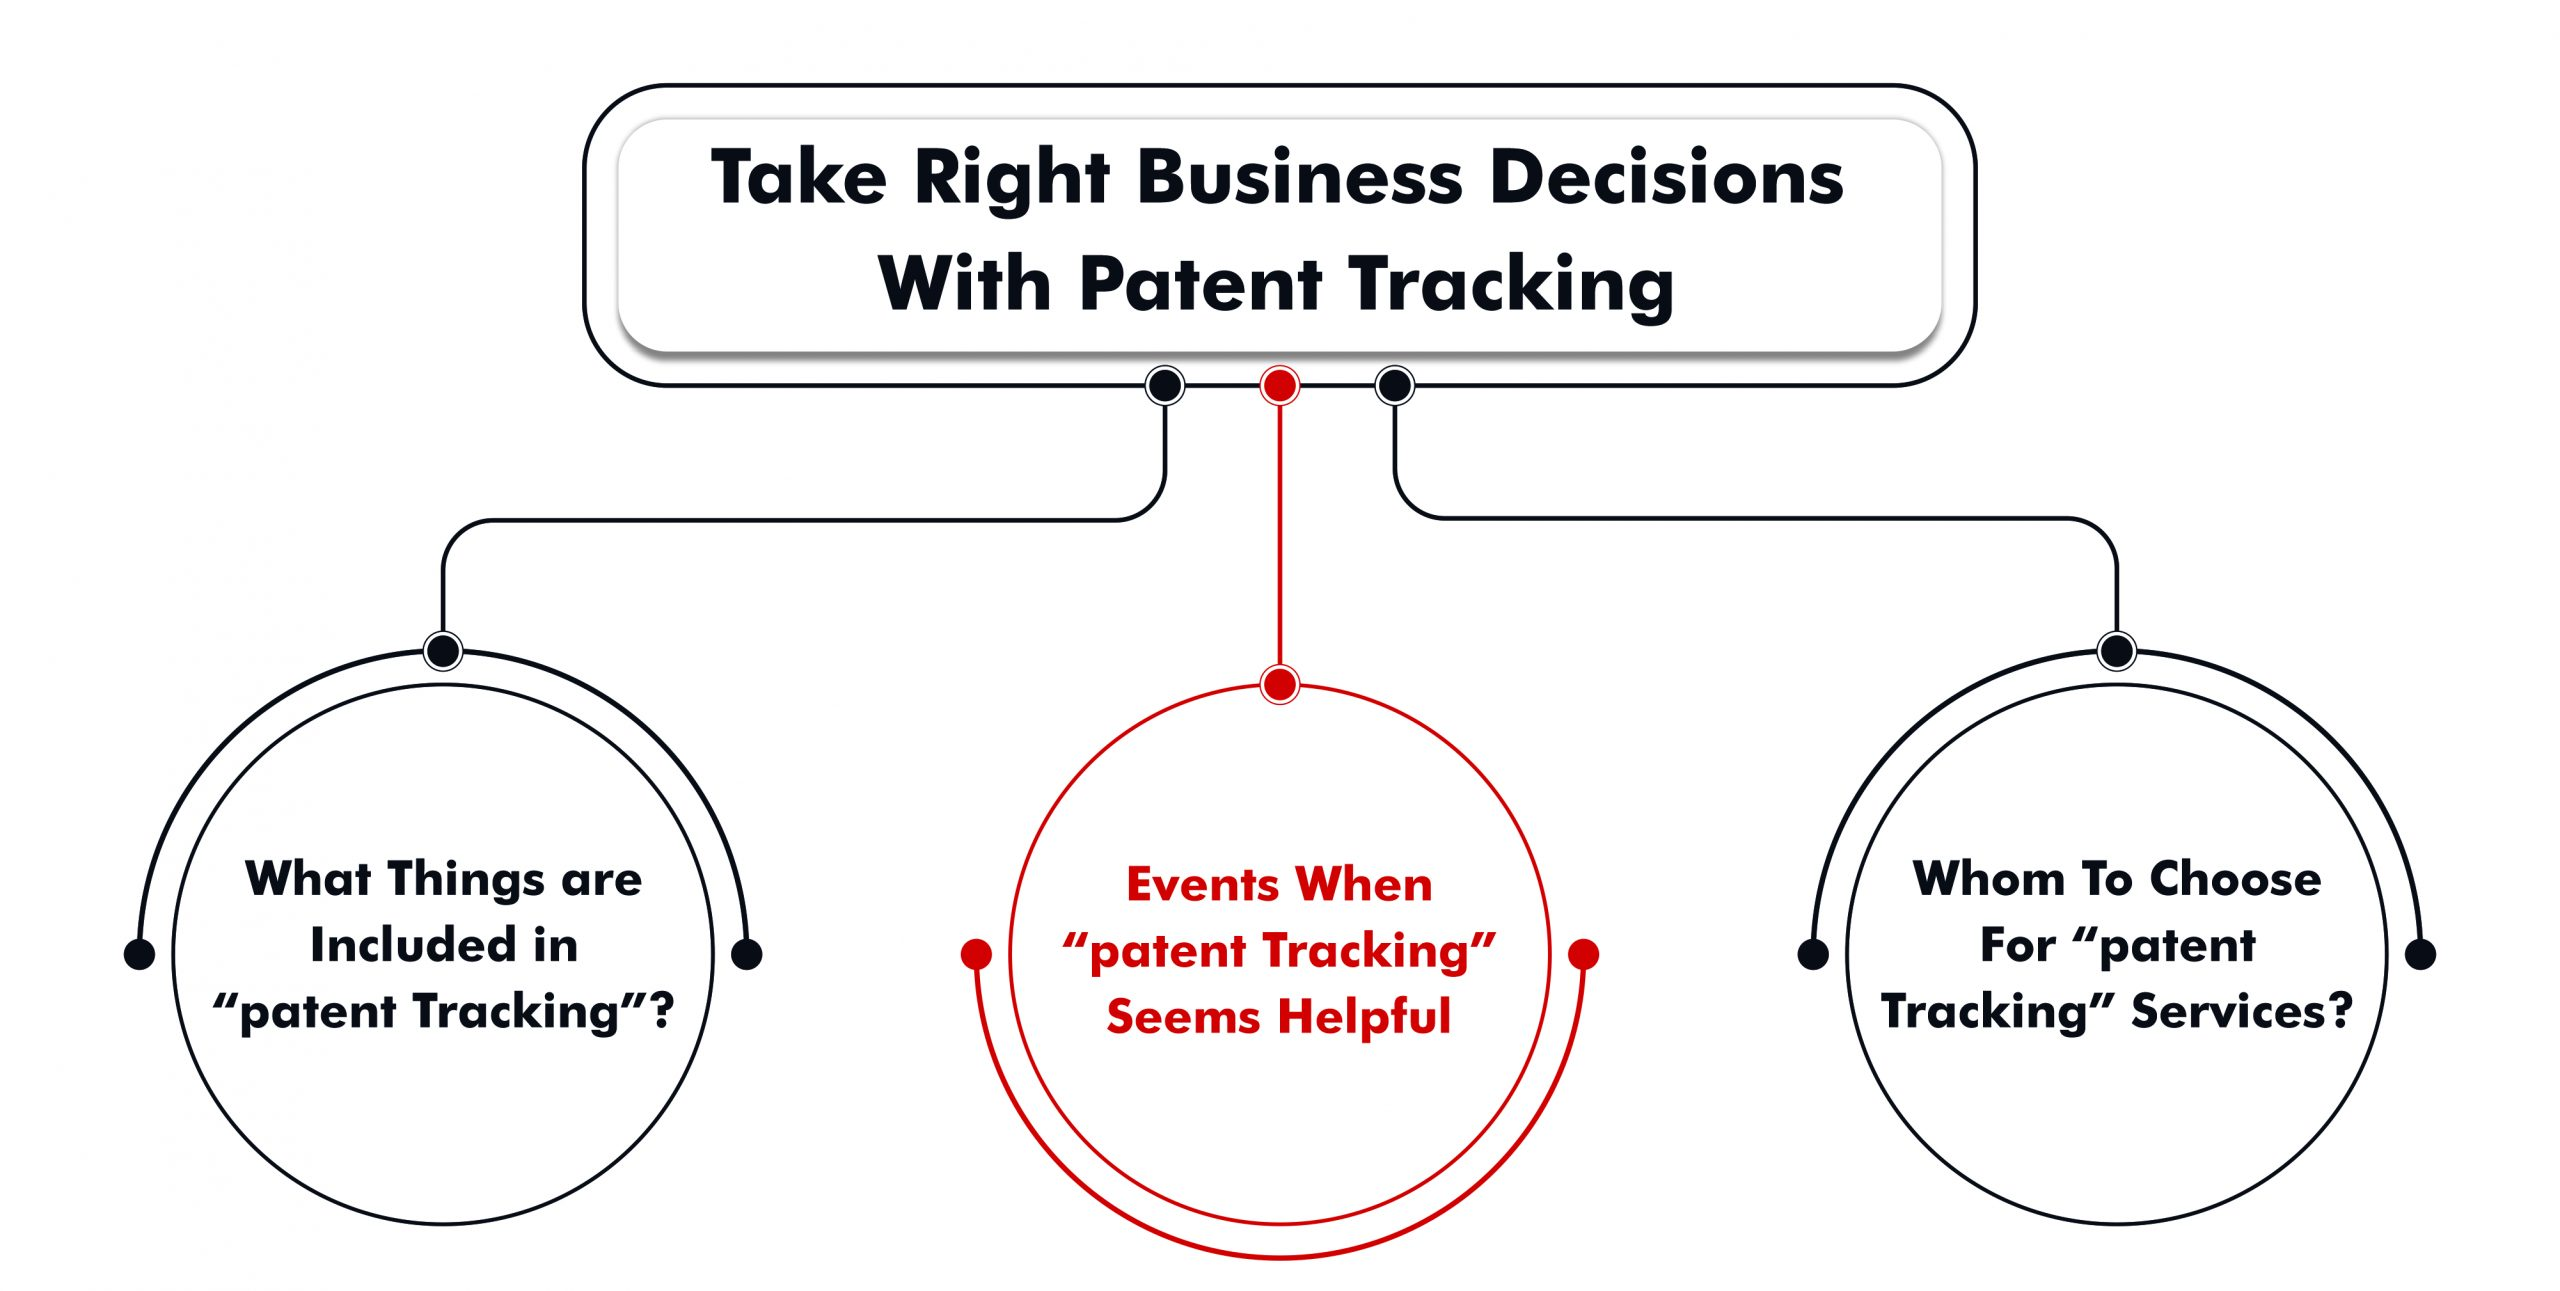 TAKE RIGHT BUSINESS DECISIONS WITH PATENT TRACKING